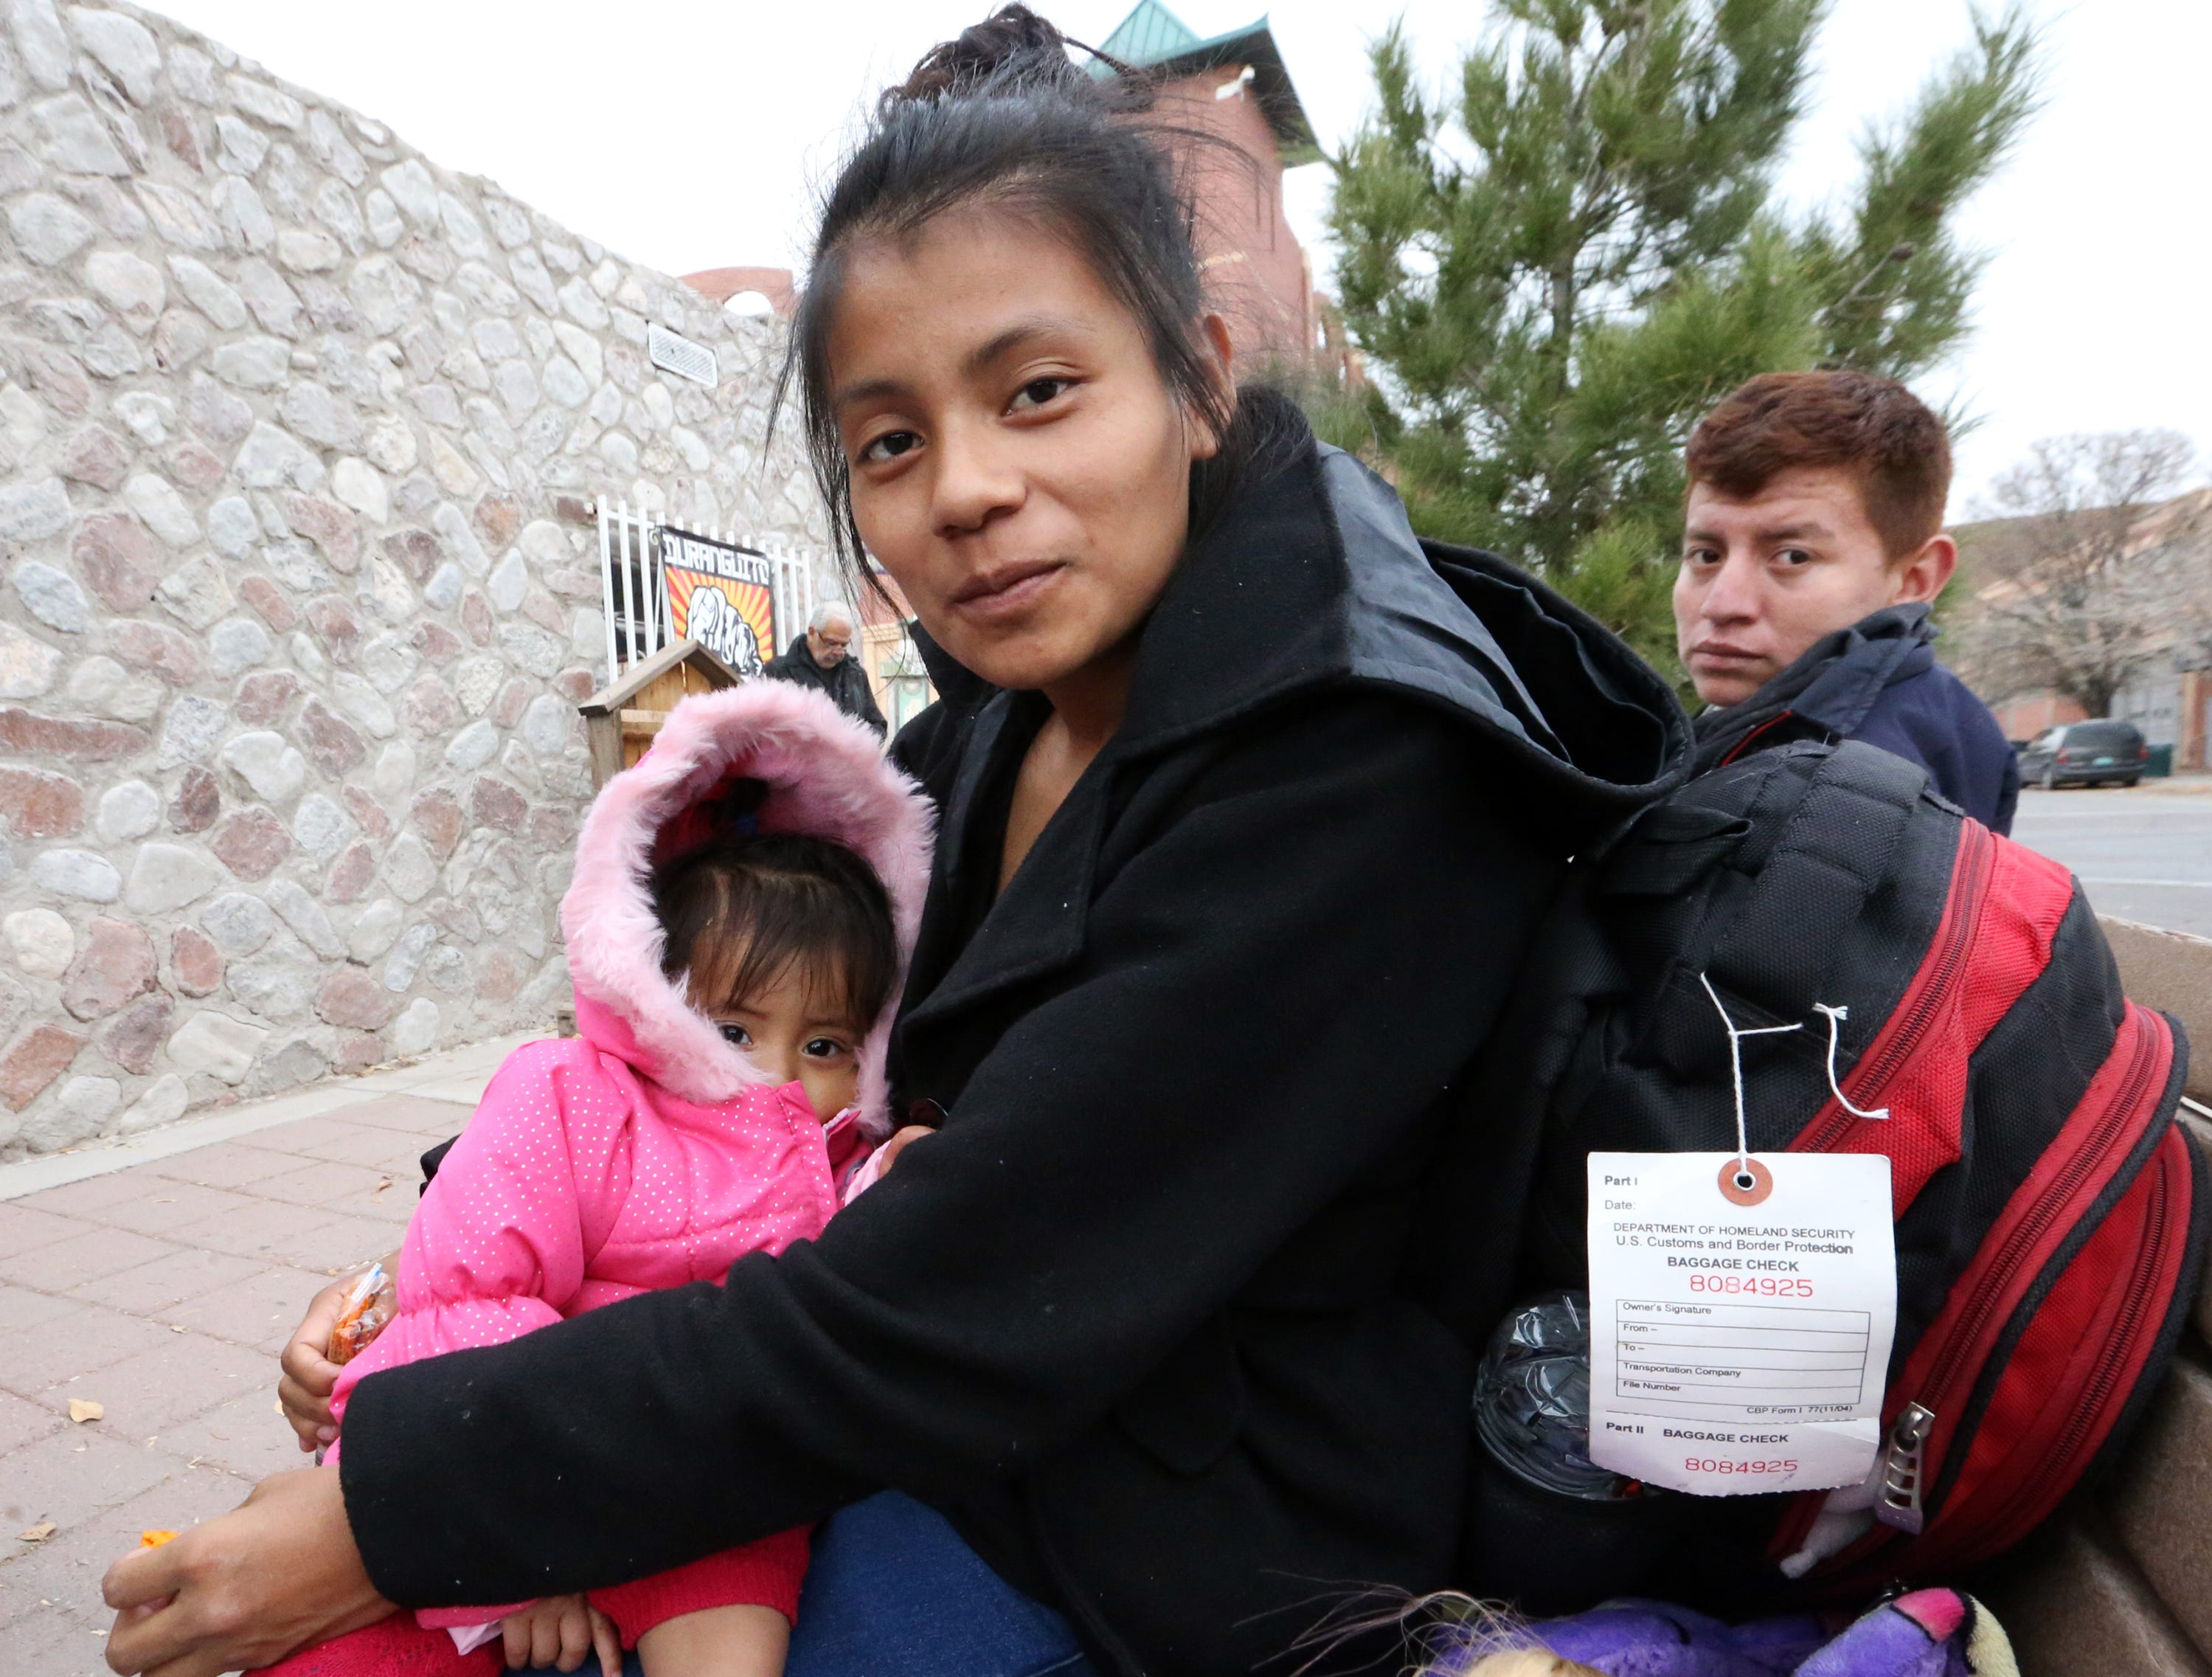 Juana Juan Diego said she left Guatemala City 20 days ago with her 1-year-old daughter, Dulce Juan Diego, as they sit outside the former Rock House Cafe and Gallery at Leon Street and Overland Avenue on Christmas Day. She was one of a group of 100 immigrants dropped off there by U.S. Immigration and Customs Enforcement.  She hopes to travel to Tennessee where she has relatives, she said. She has a baggage-check tag on her backpack from U.S. Customs and Border Protection.